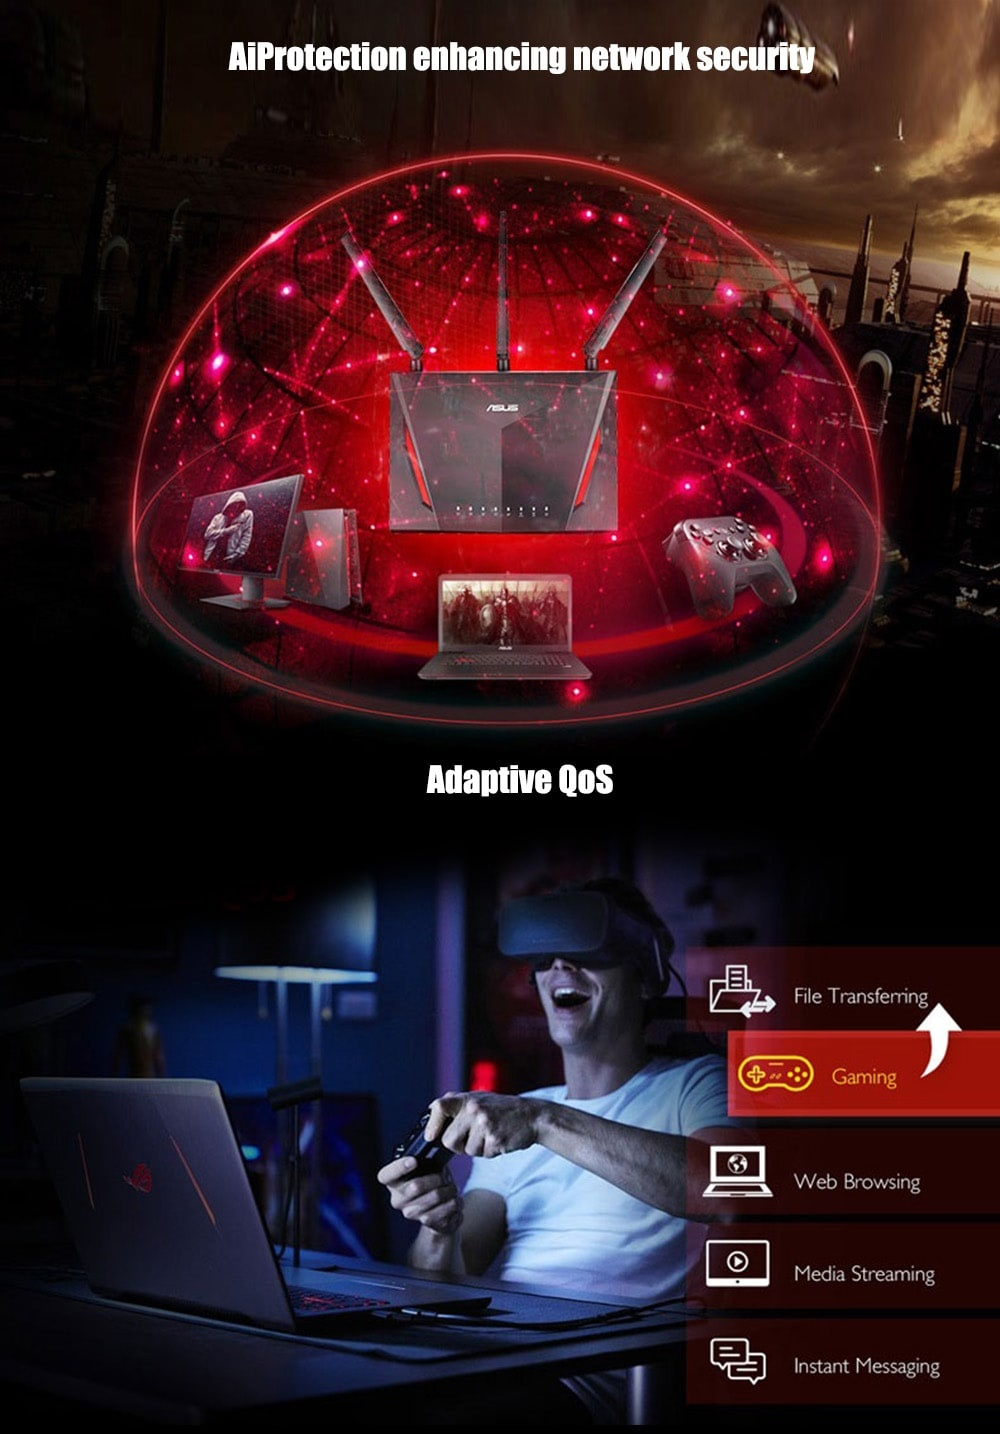 ASUS RT-AC86U - AC2900 Dual Band Gigabit WiFi Gaming Router with MU-MIMO,  AiMesh for mesh wifi system, AiProtection network security by Trend Micro,